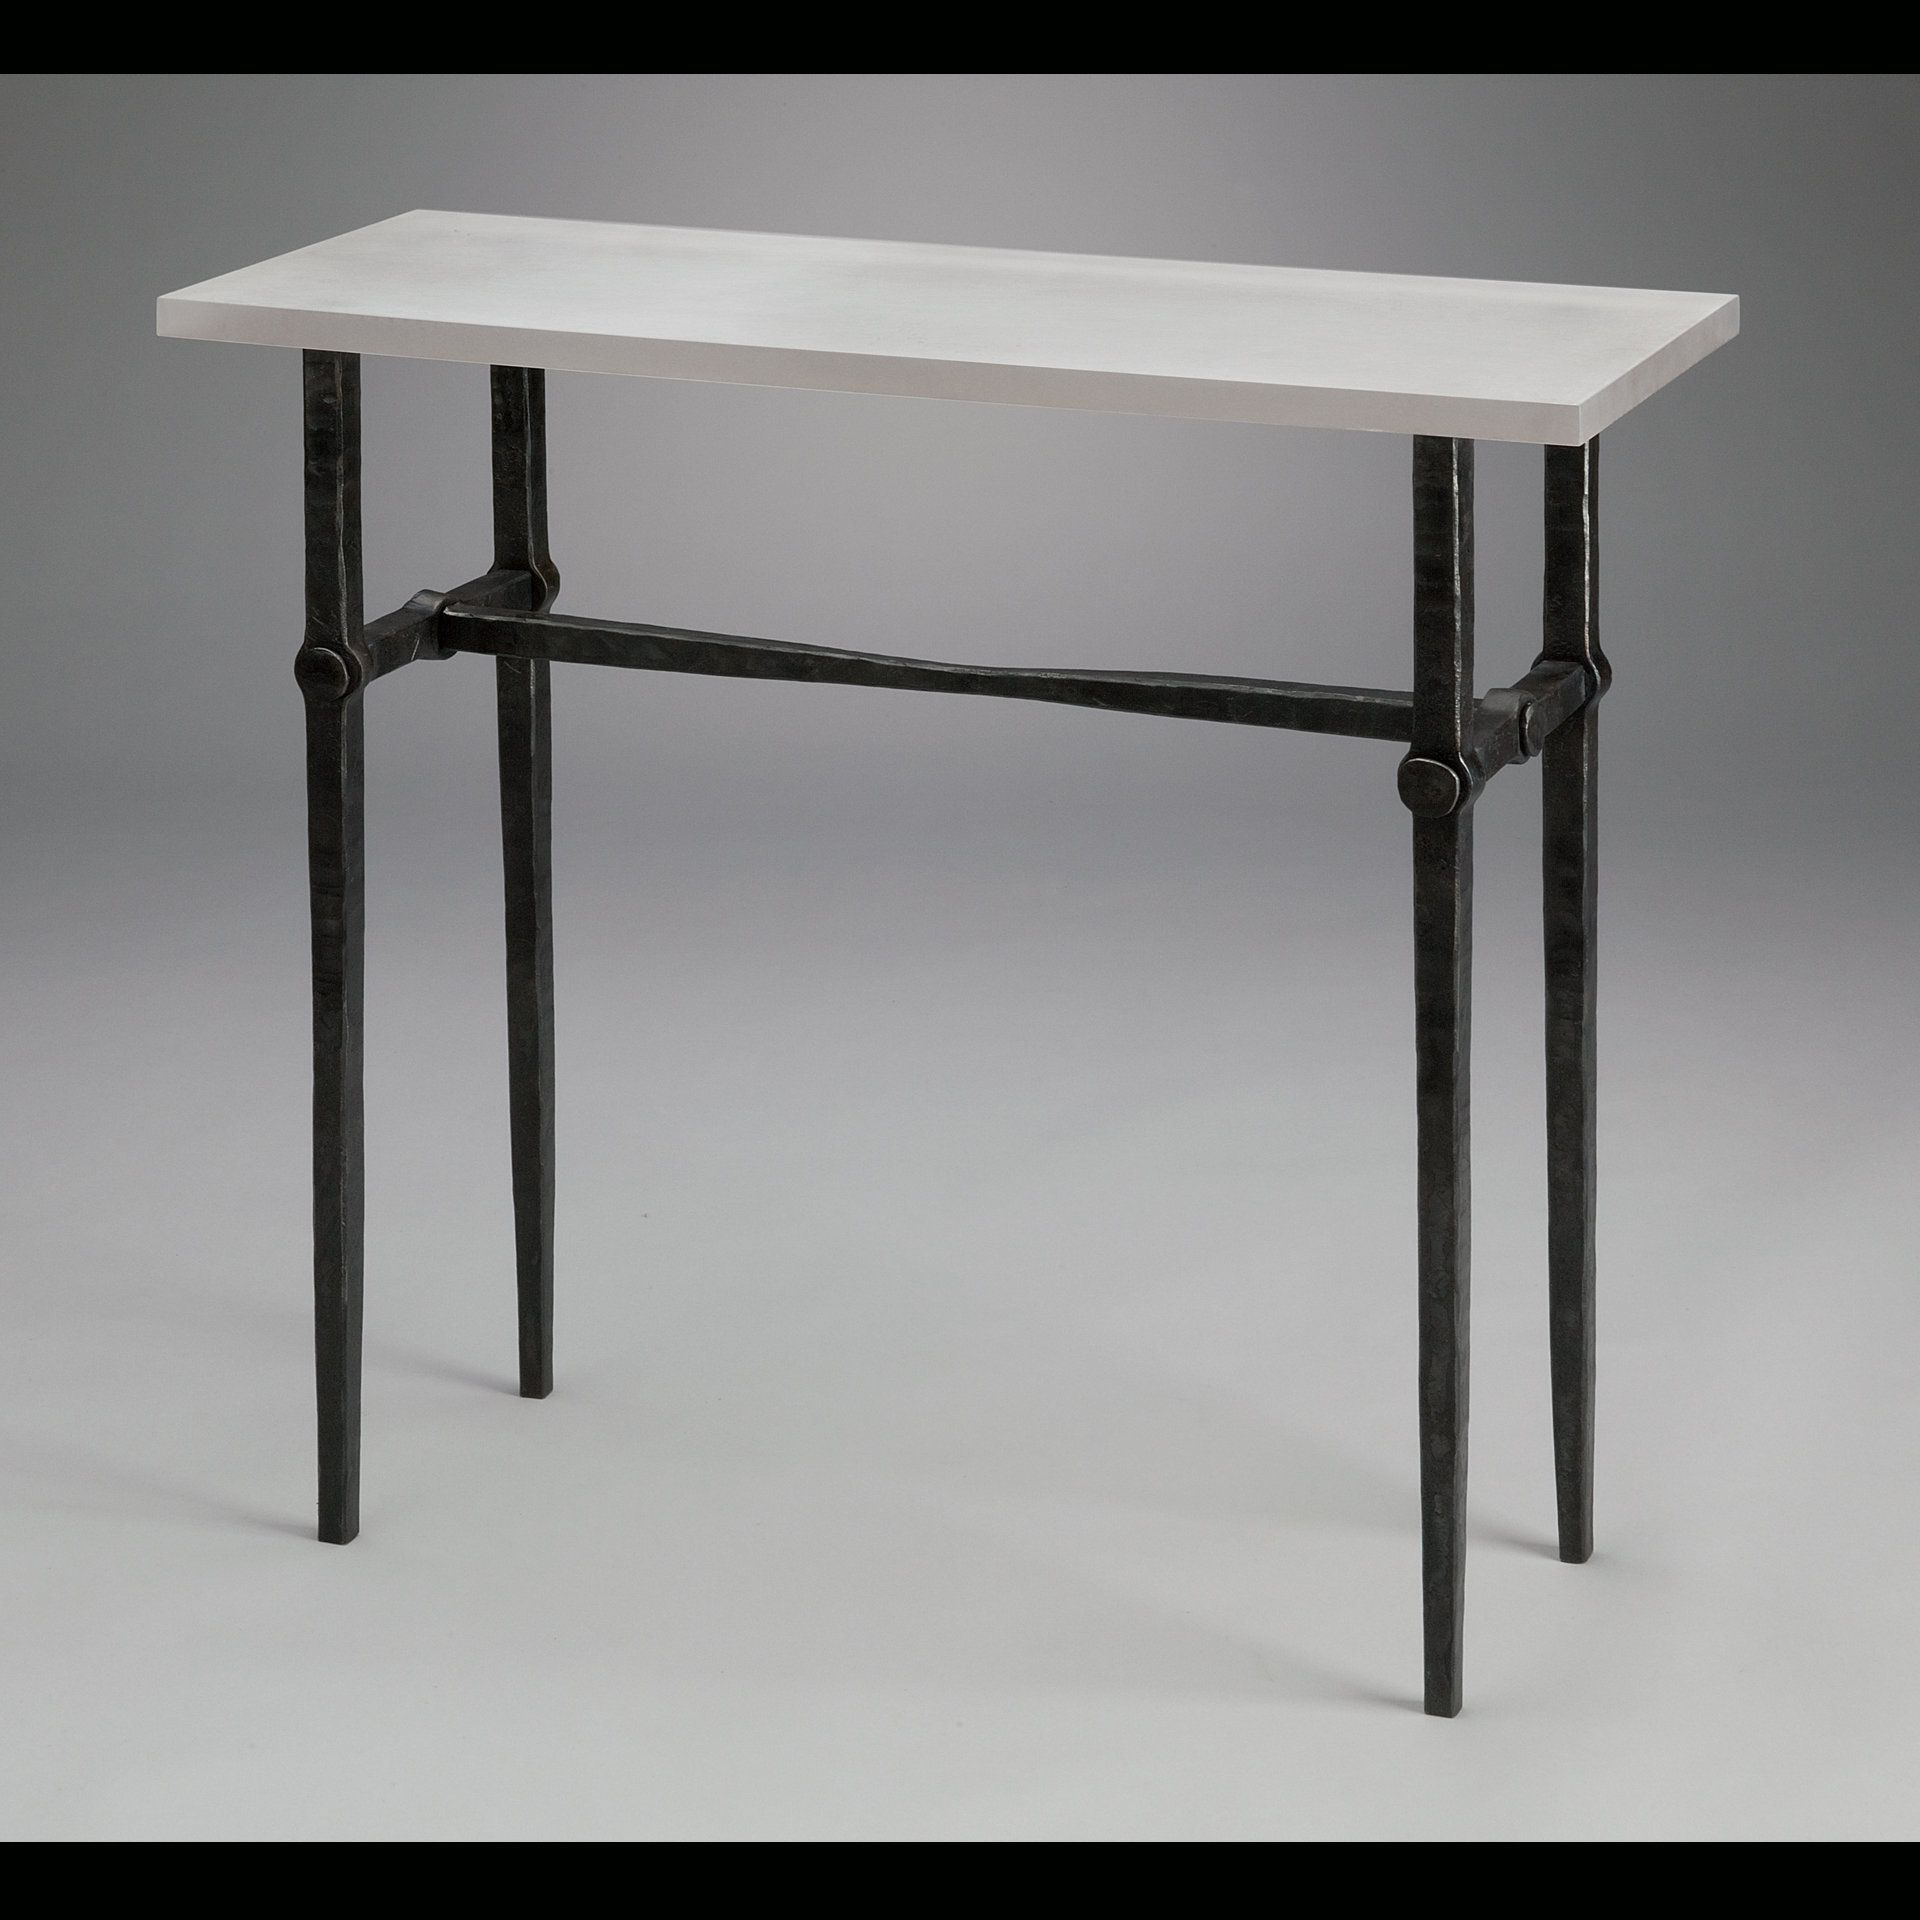 Pinjulia Forbes On Patio Ideas | Table, Console Table, Narrow Throughout Parsons Clear Glass Top & Dark Steel Base 48X16 Console Tables (Gallery 5 of 20)